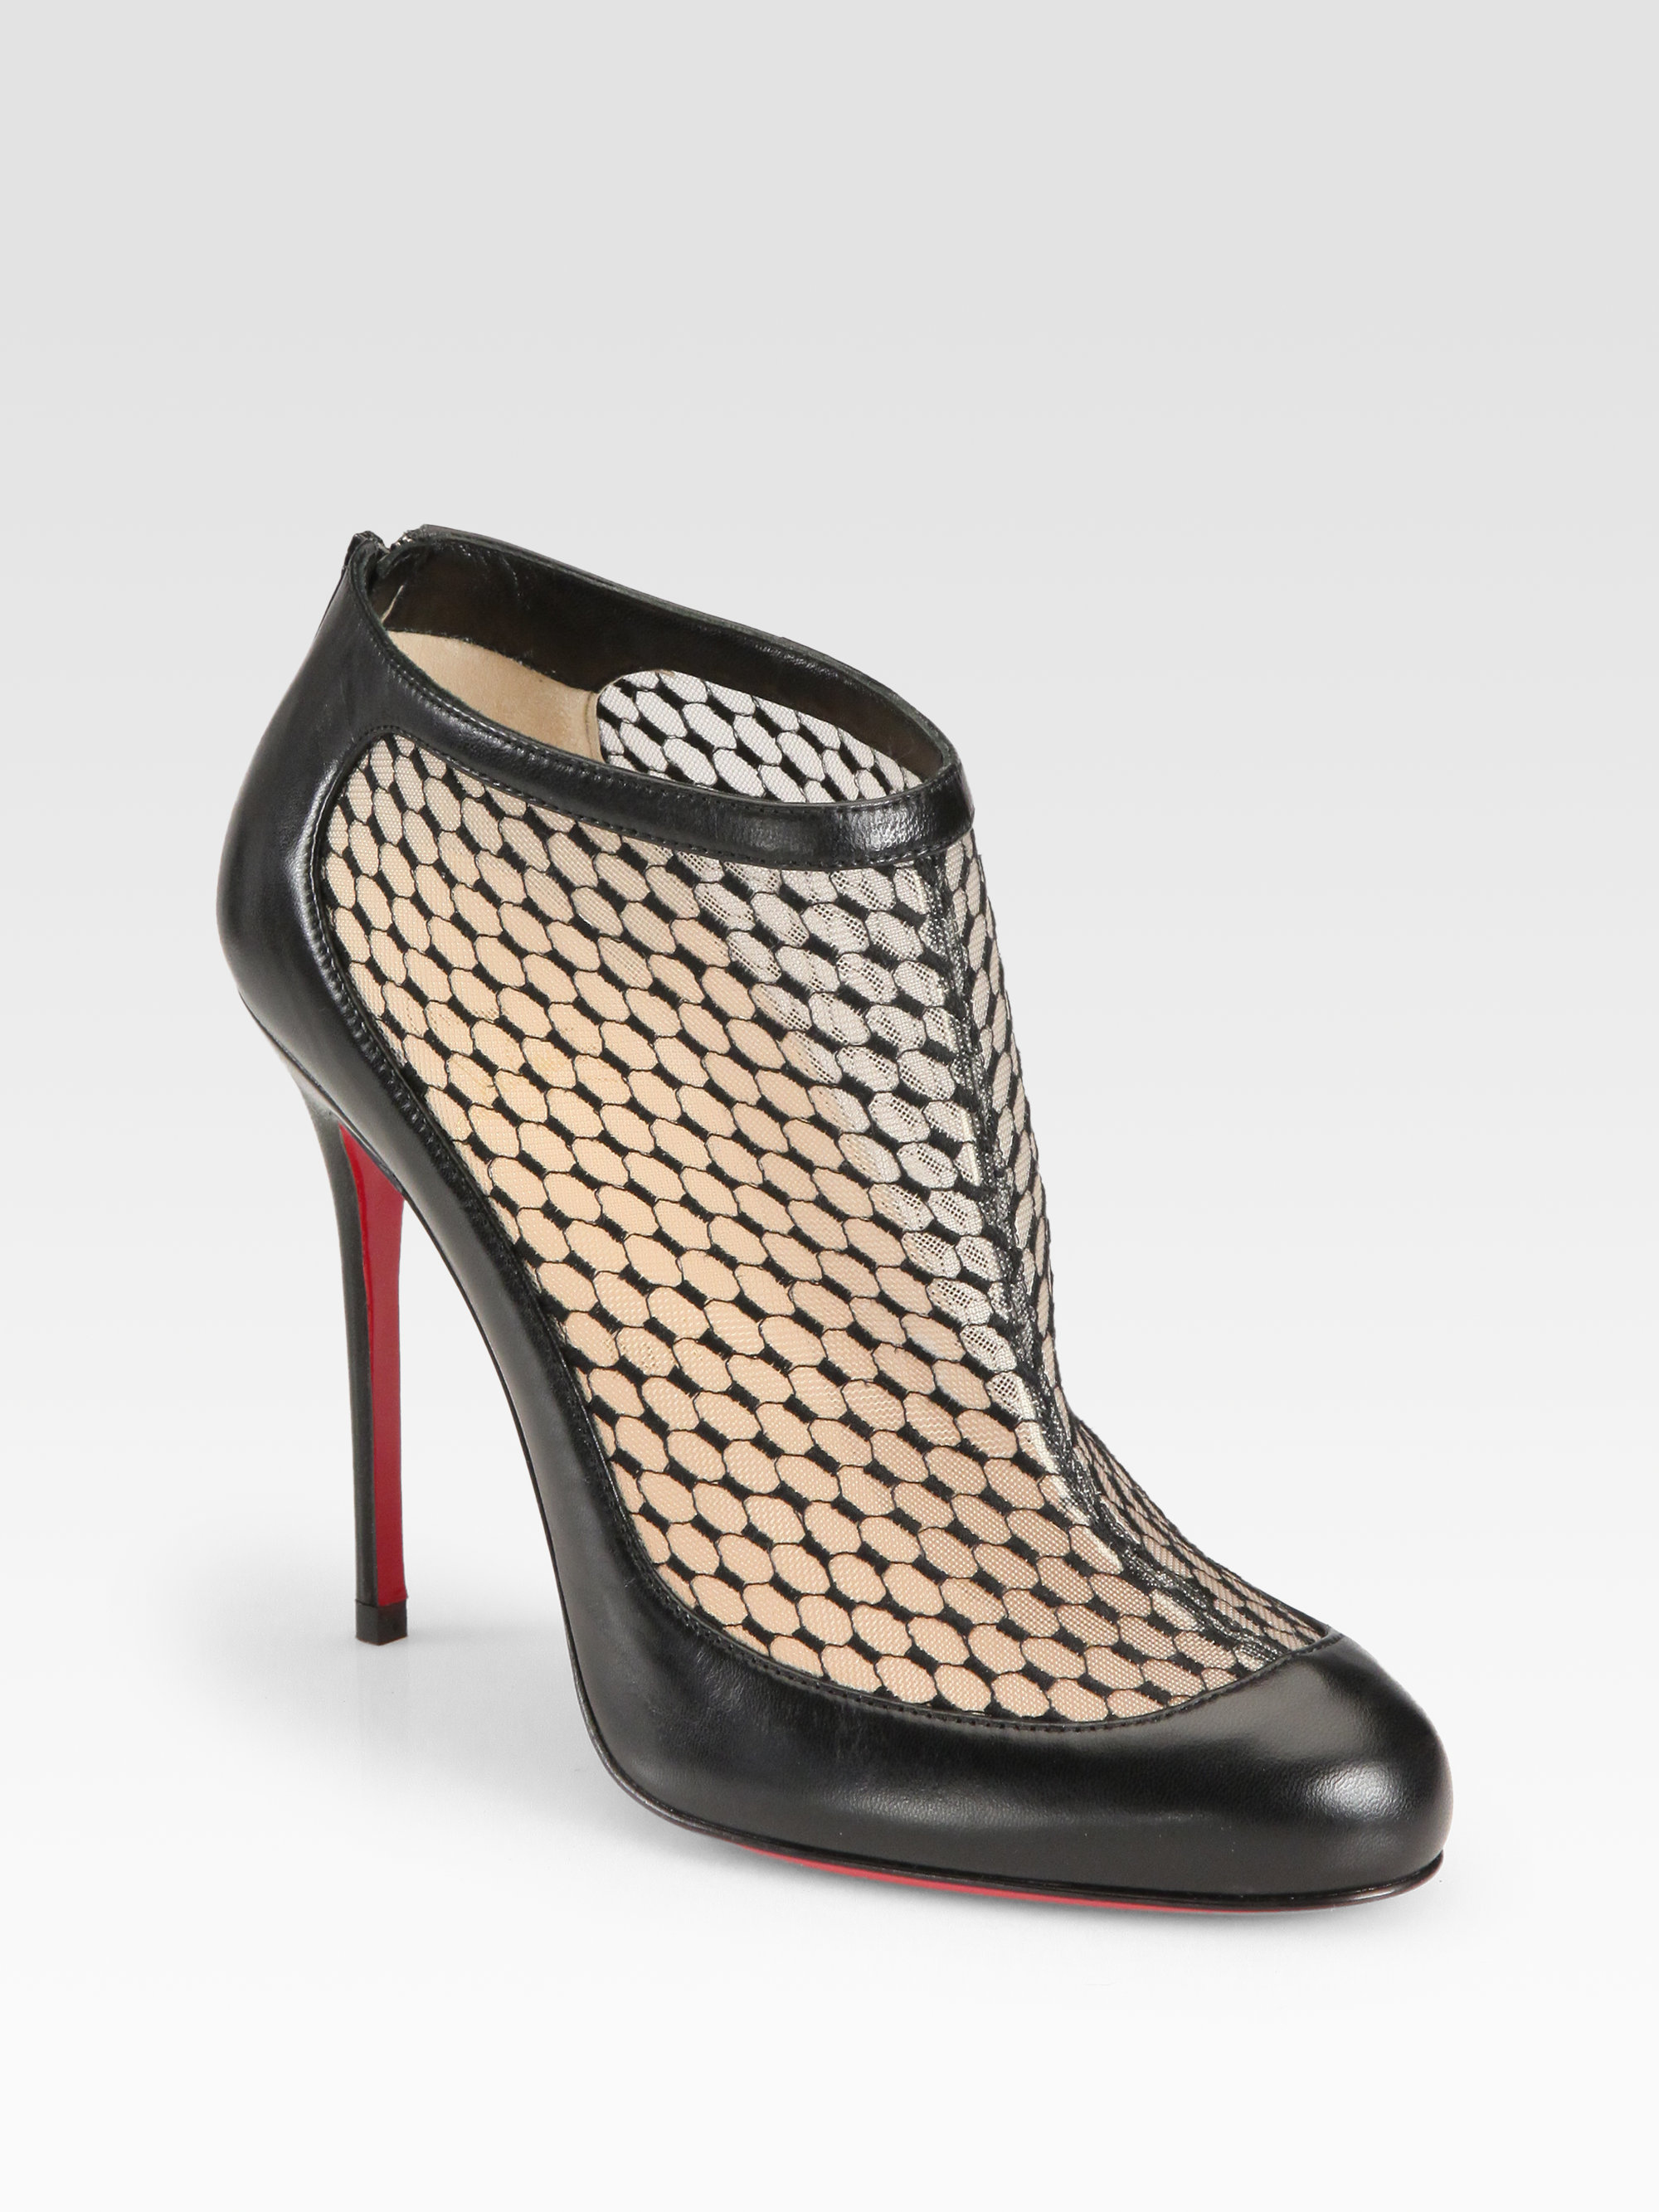 da665428d6a7 Lyst - Christian Louboutin Anna May Lace Leather Ankle Boots in Black